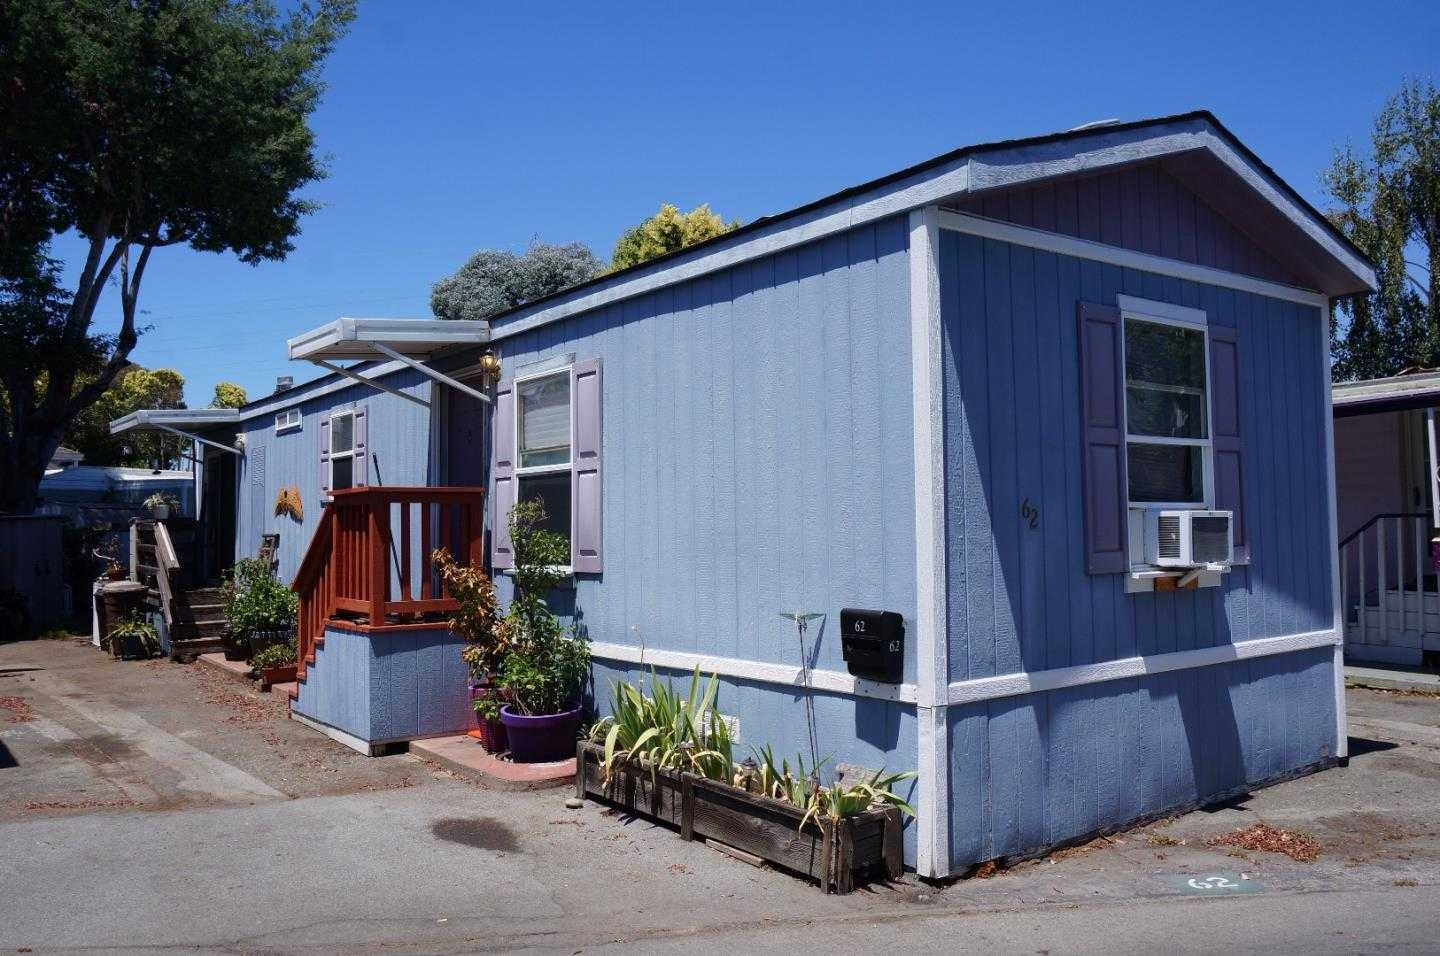 $69,000 - 2Br/2Ba -  for Sale in Redwood City